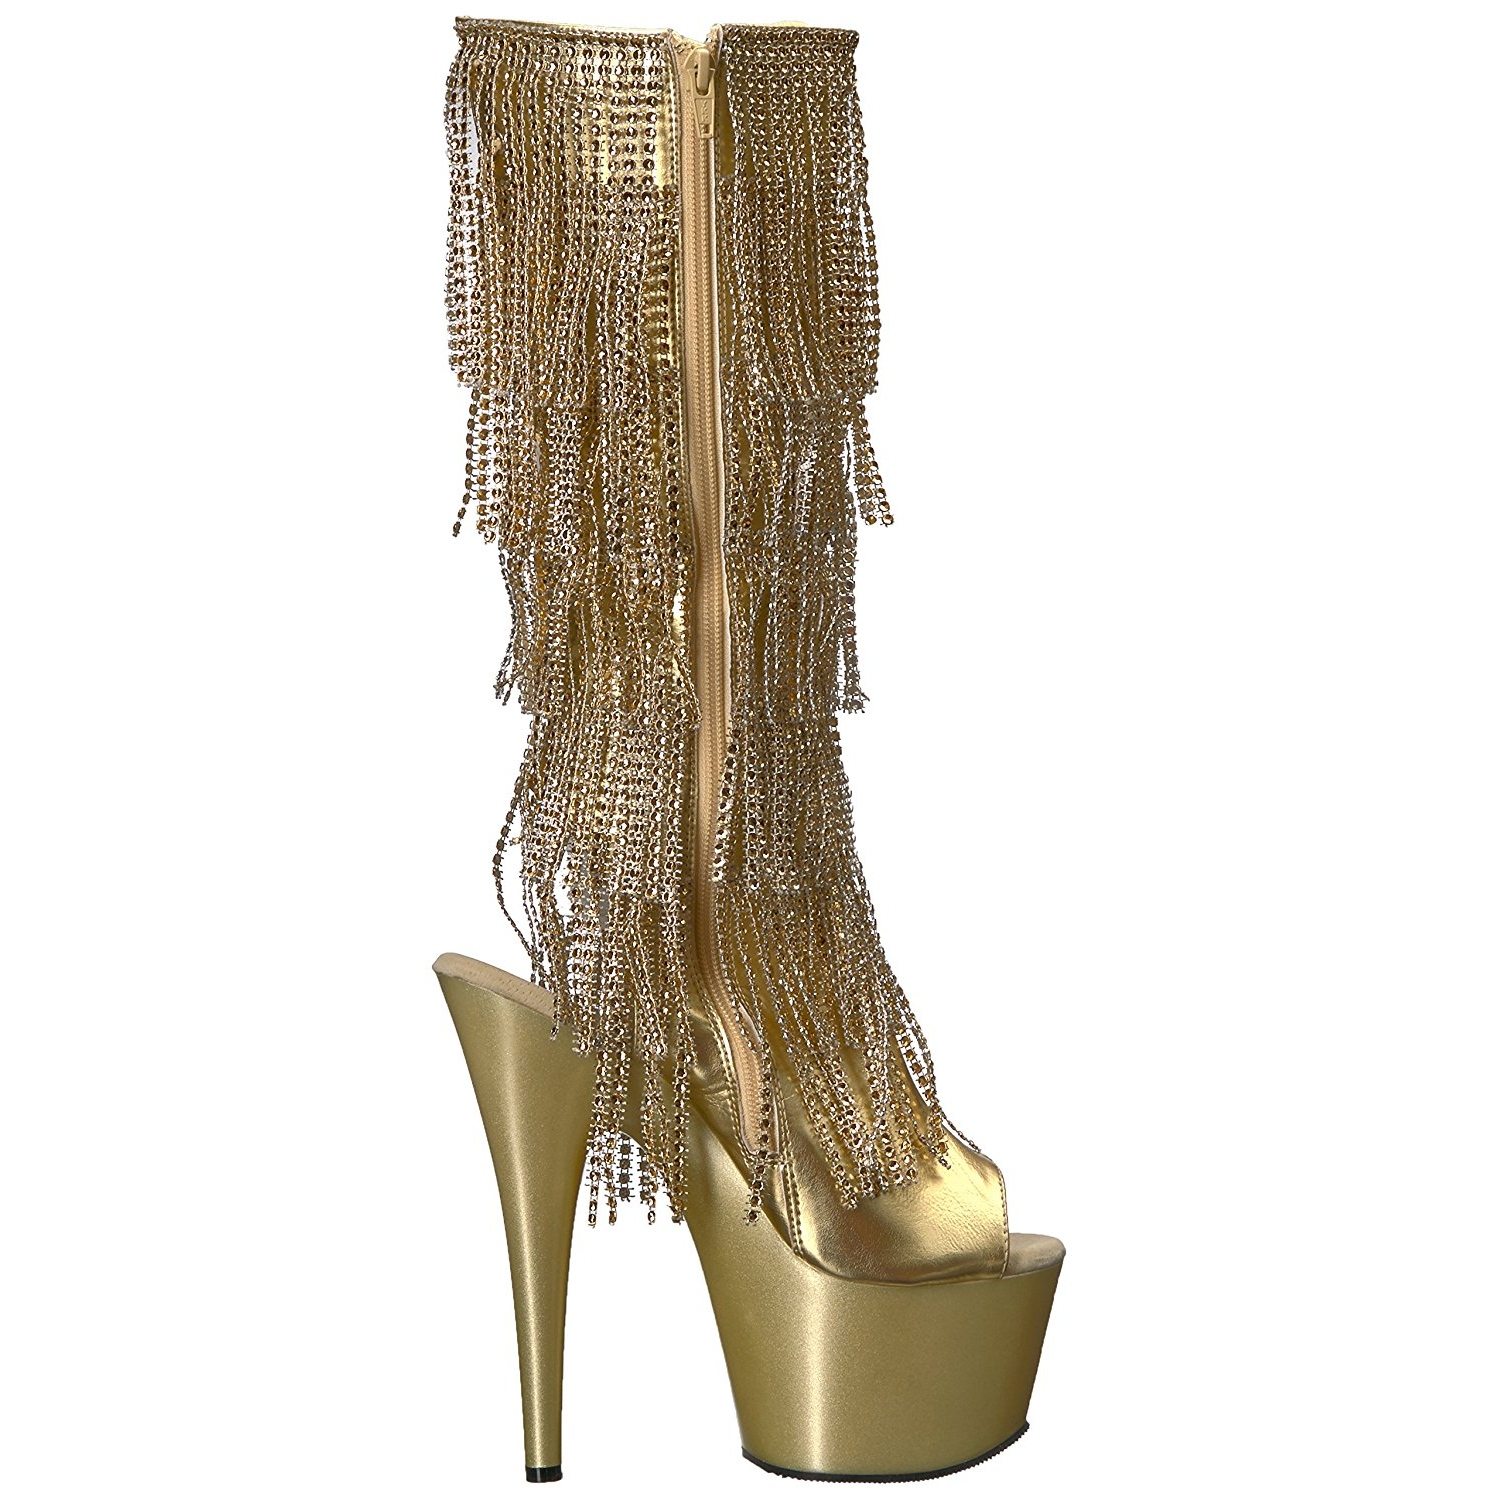 Strass High Adore 2024rsf Fringe 18 Boots Heels Gold Cm Womens rthCxsQdB